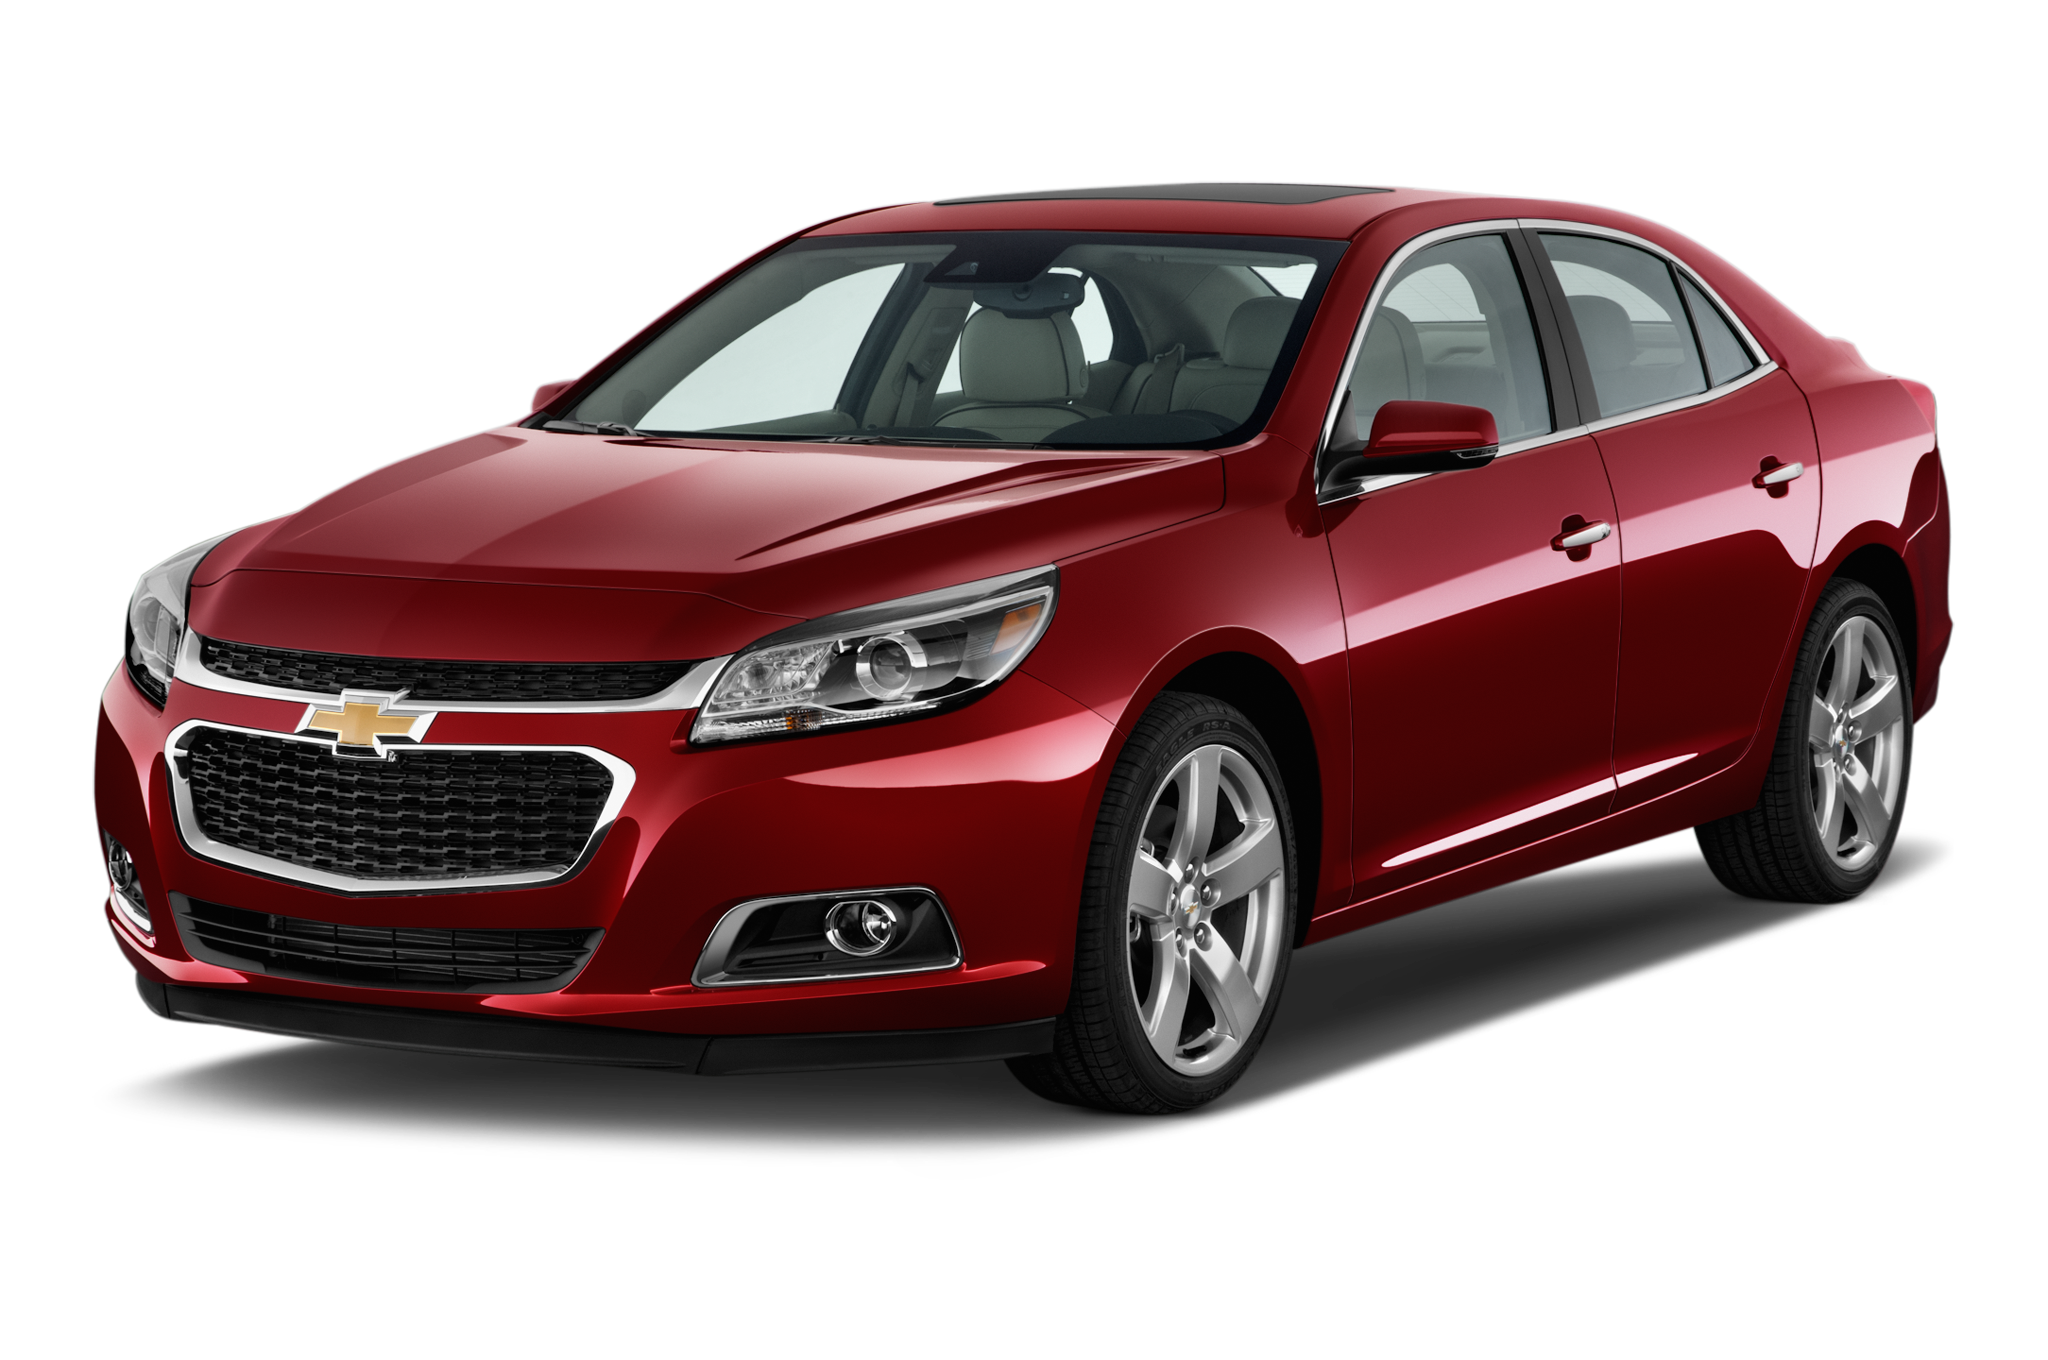 2014 chevrolet malibu first drive automobile magazine. Black Bedroom Furniture Sets. Home Design Ideas